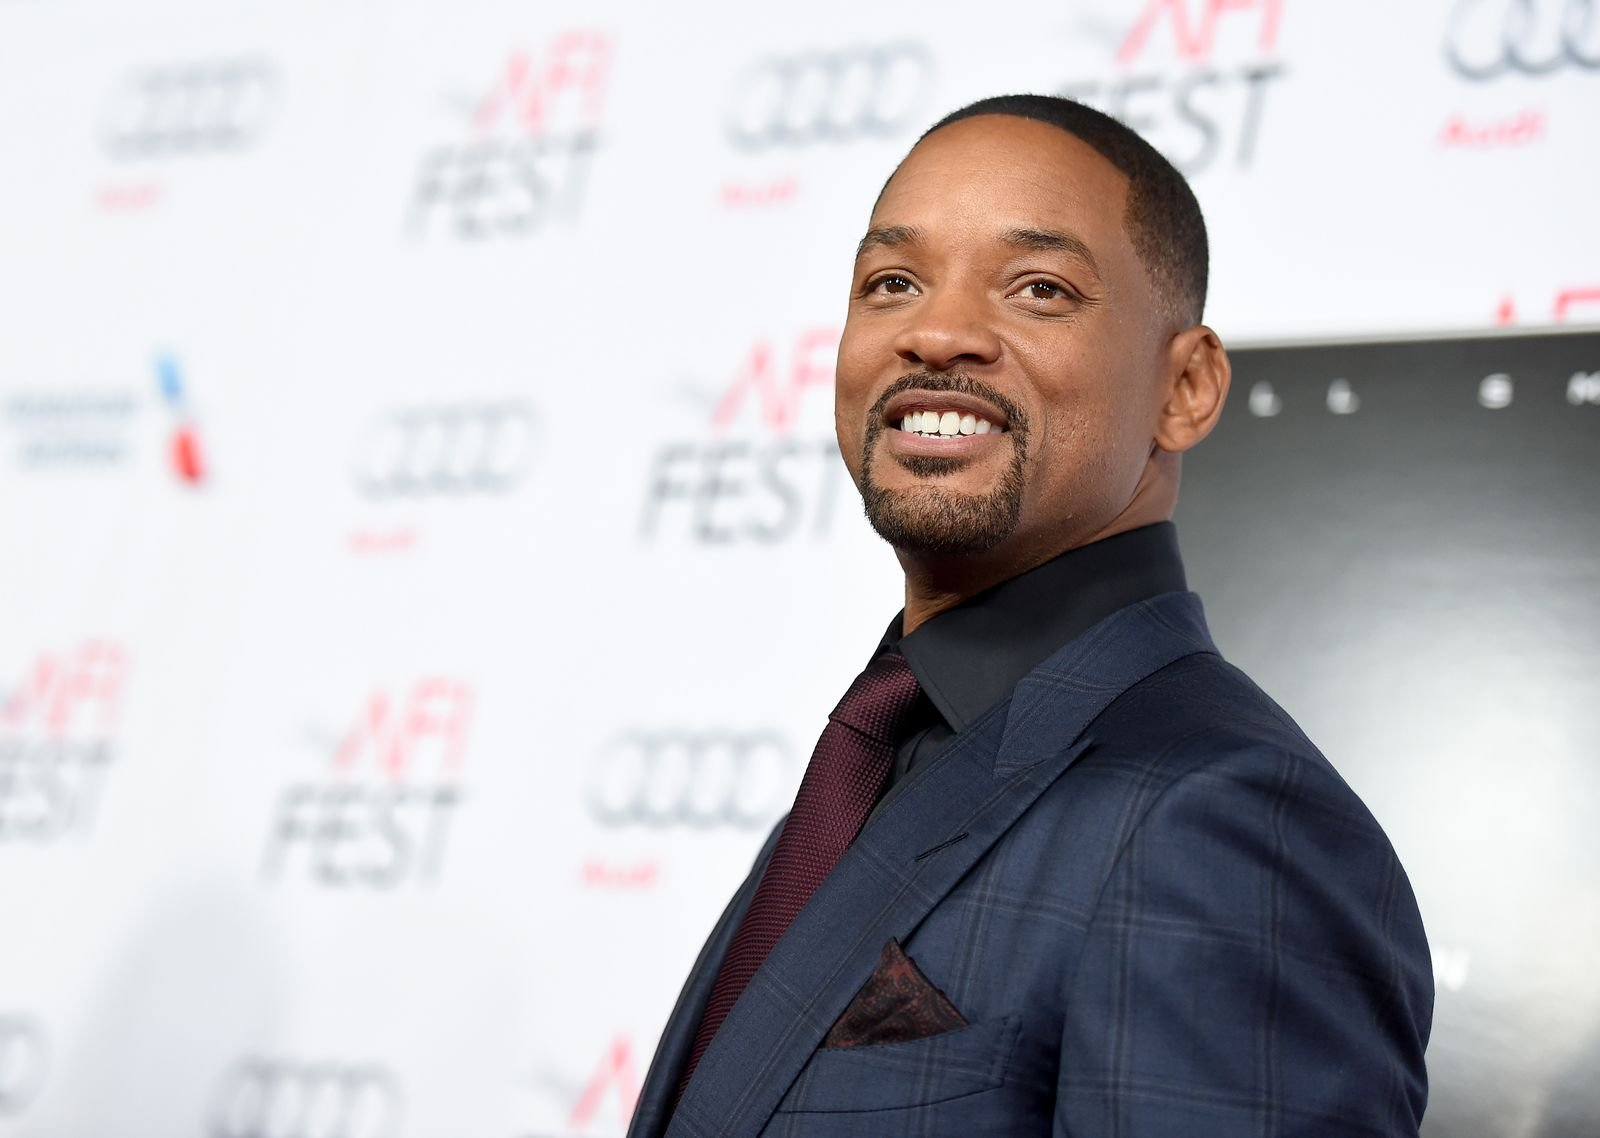 Will Smith at the Centerpiece Gala Premiere of Concussion during AFI FEST 2015 in California/Photo:Getty Images.